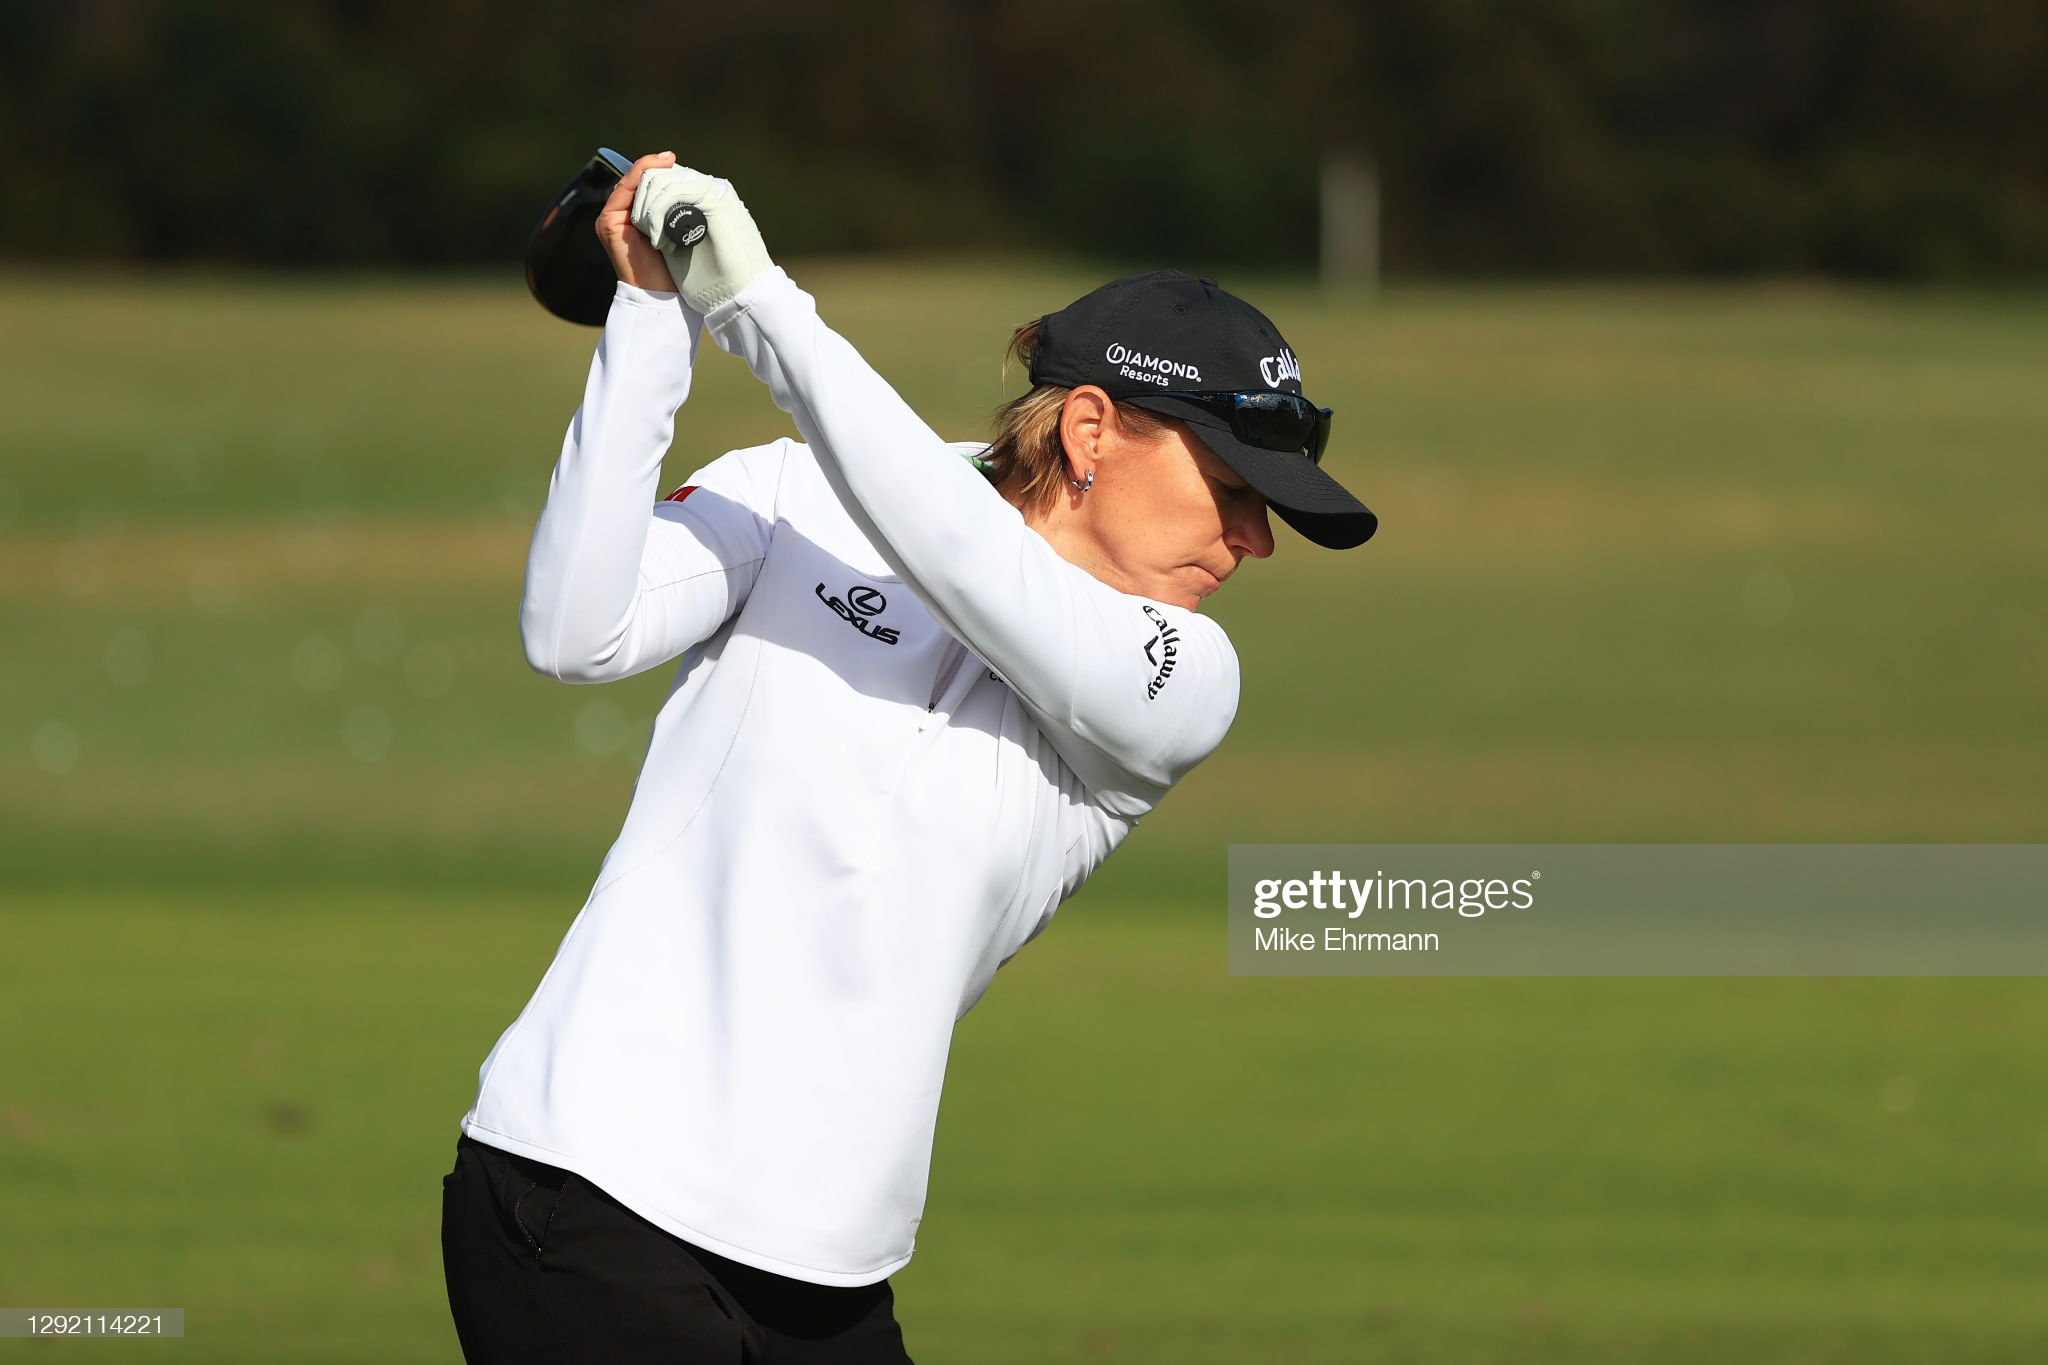 https://media.gettyimages.com/photos/annika-sorenstam-of-sweden-warms-up-on-the-range-prior-to-the-start-picture-id1292114221?s=2048x2048